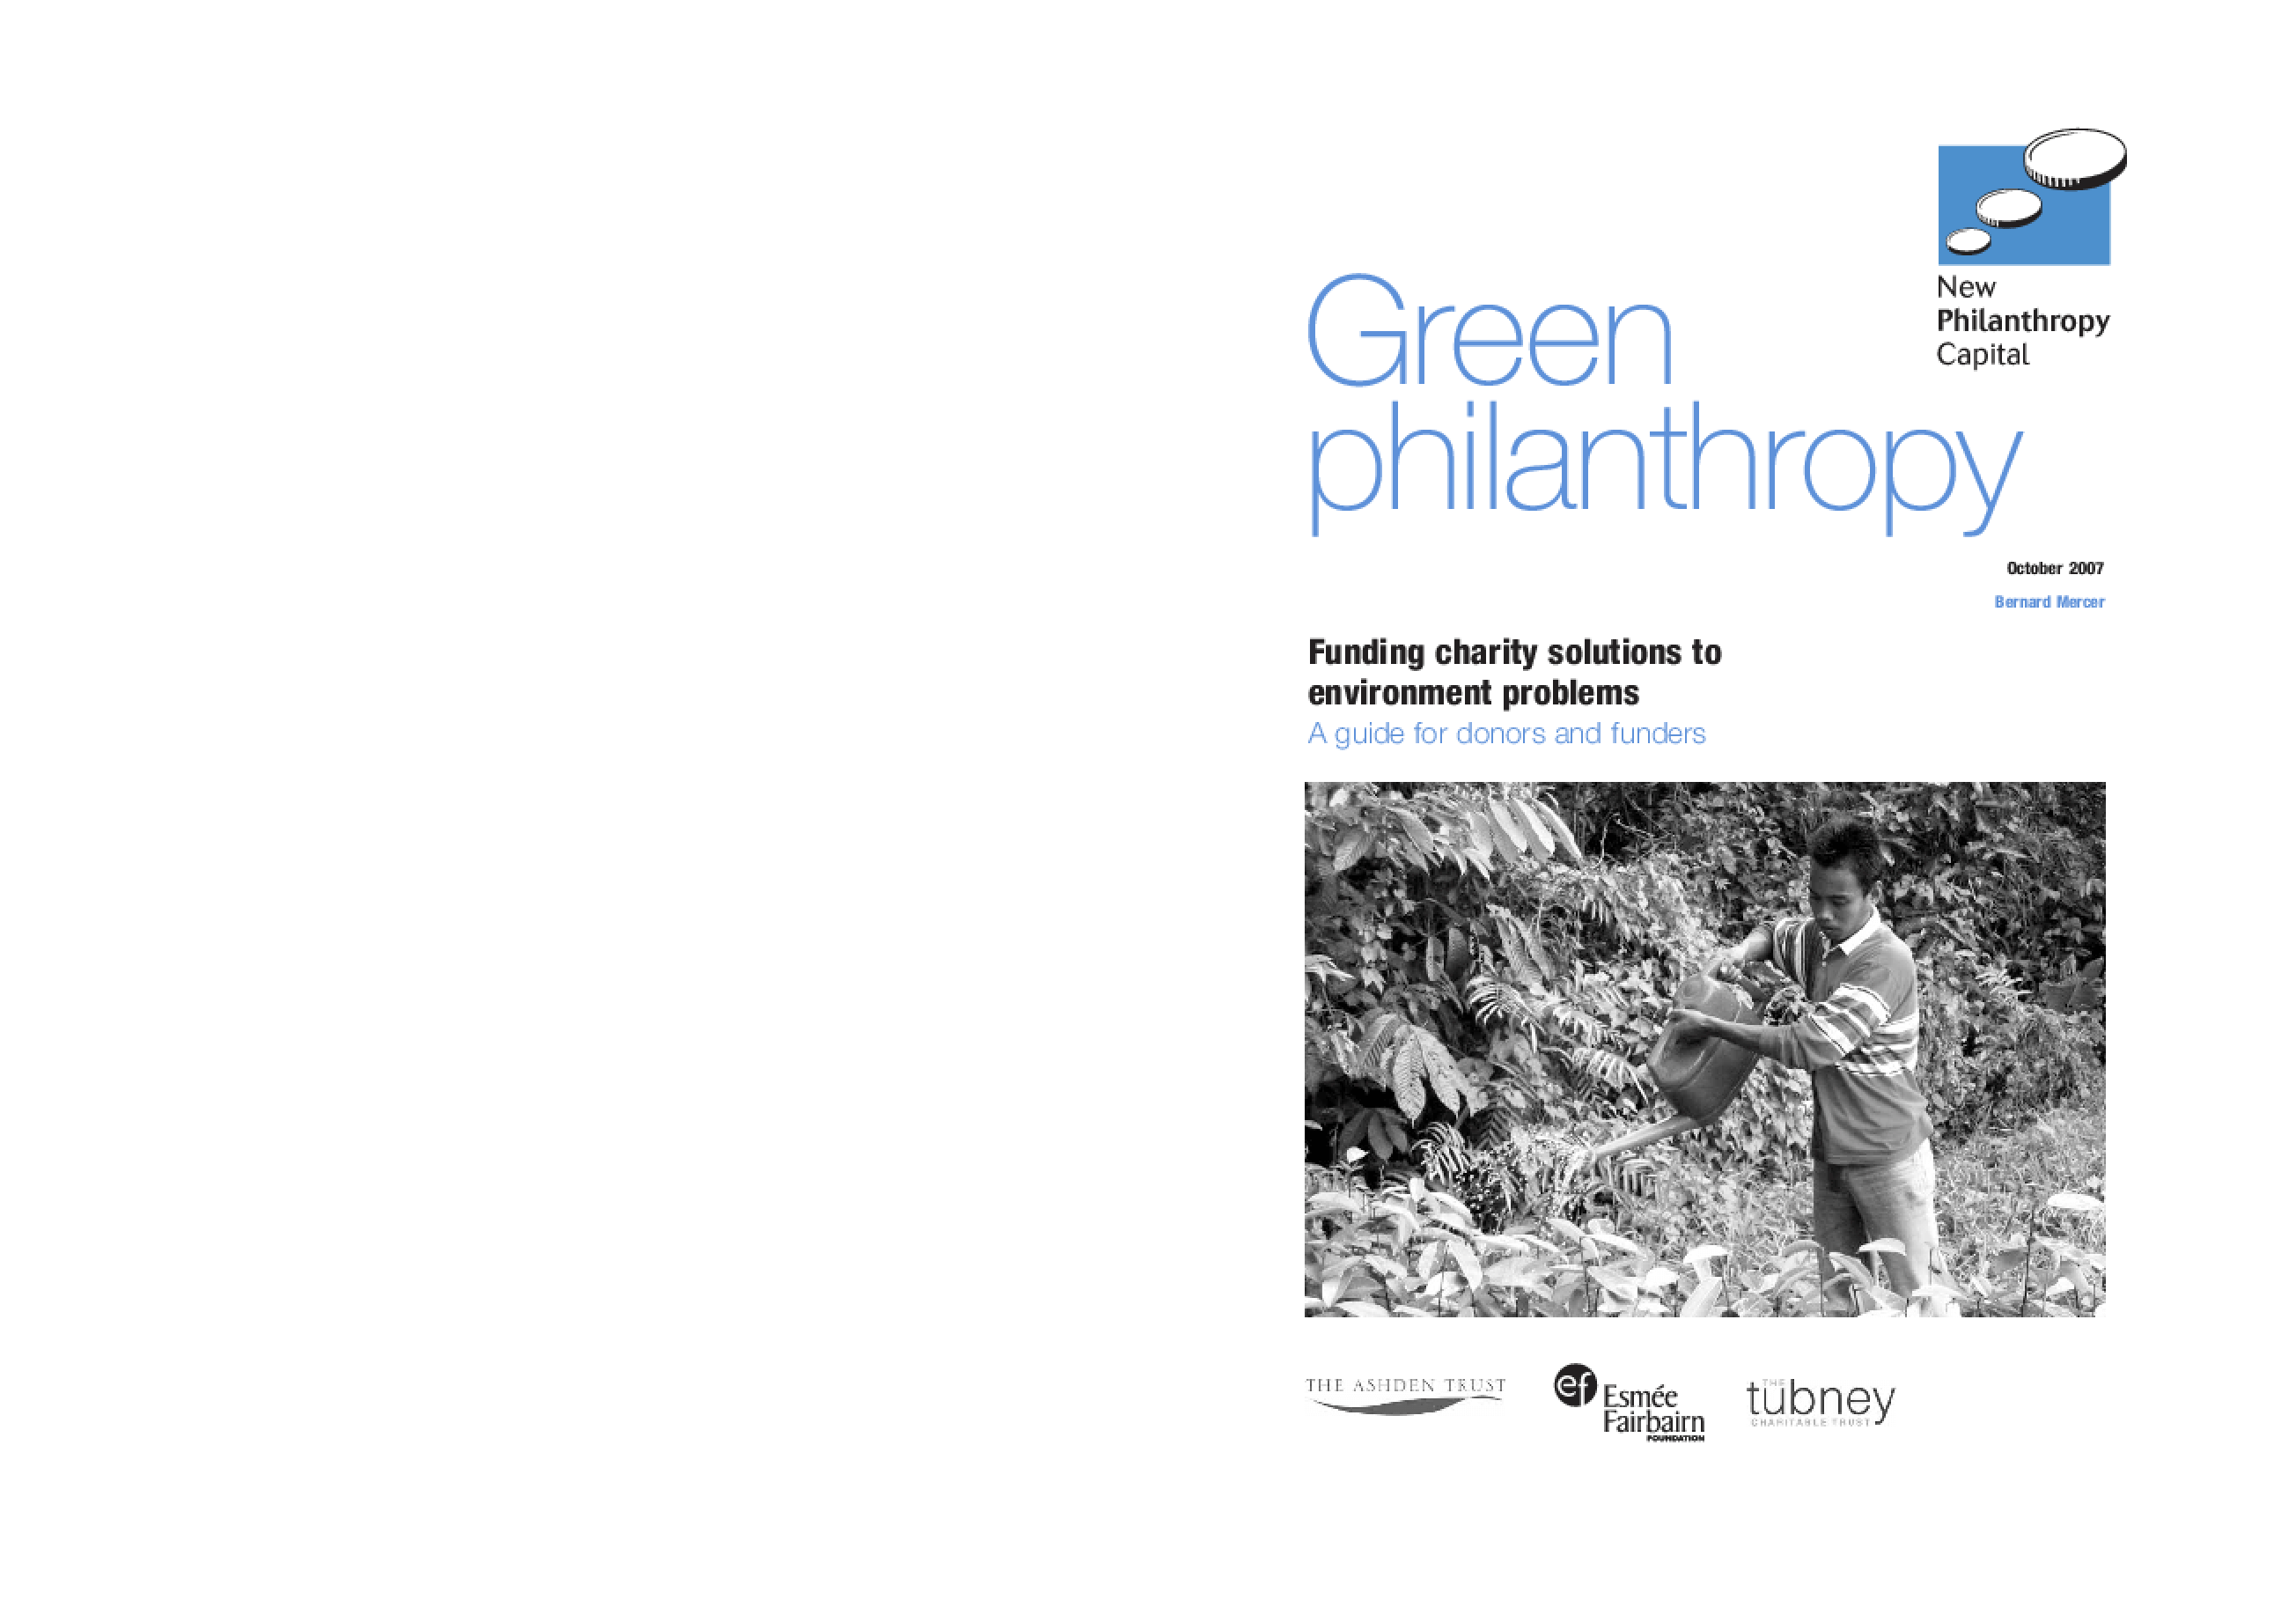 Green Philanthropy: Funding Charitable Solutions to Environment Problems, a Guide for Donors and Funders